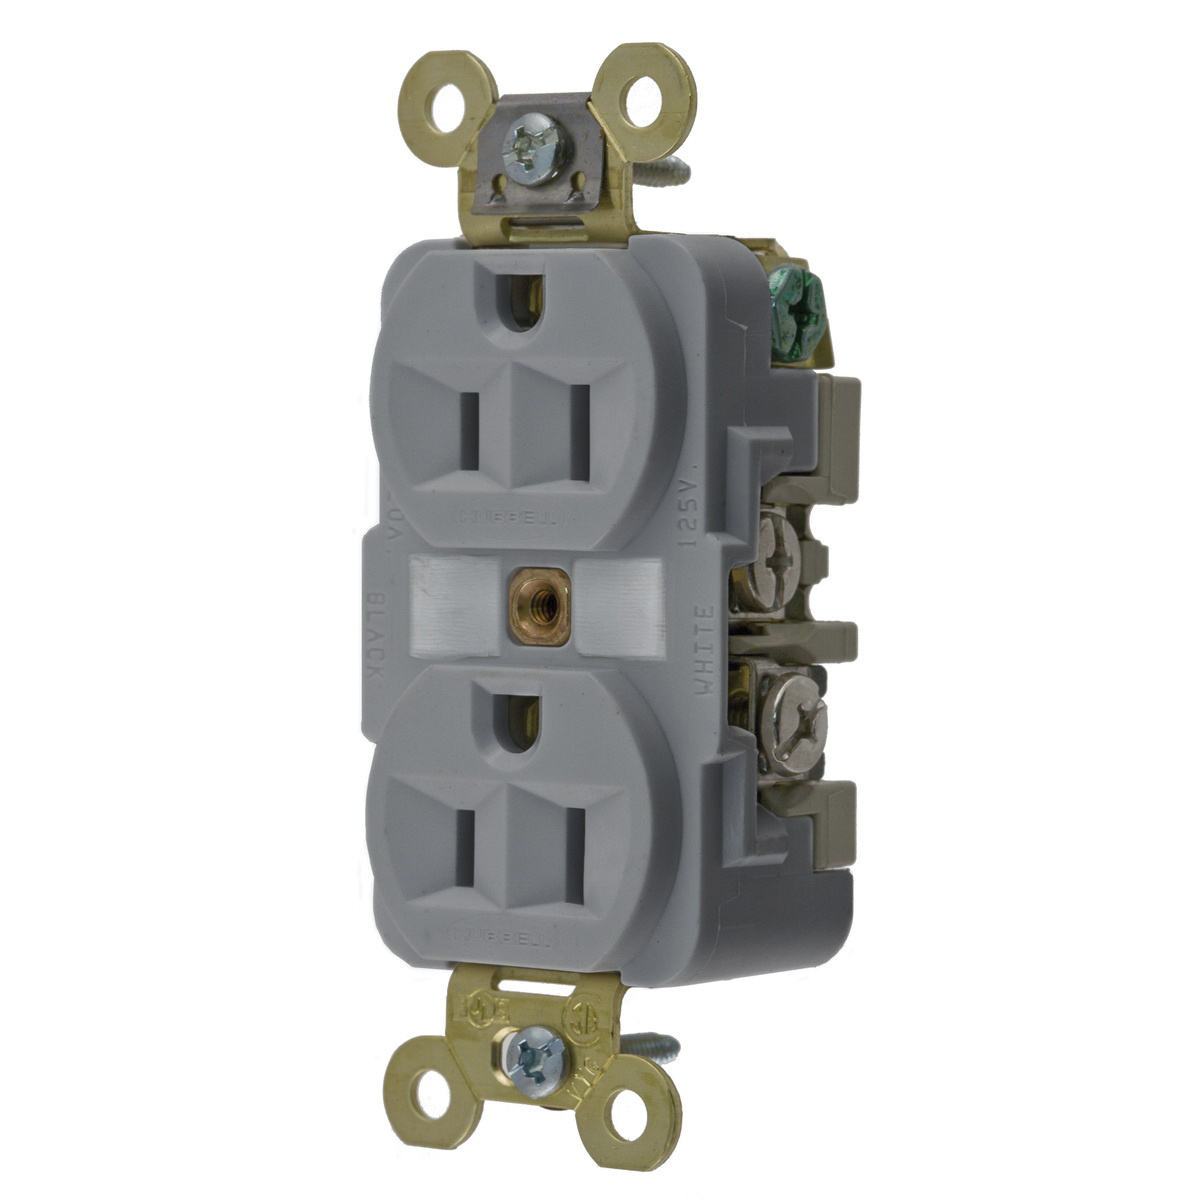 hight resolution of hubbell wiring hbl5262gy industrial specification grade extra heavy duty straight blade receptacle 2 pole 3 wire 125 volt 15 amp nema 5 15r gray hbl